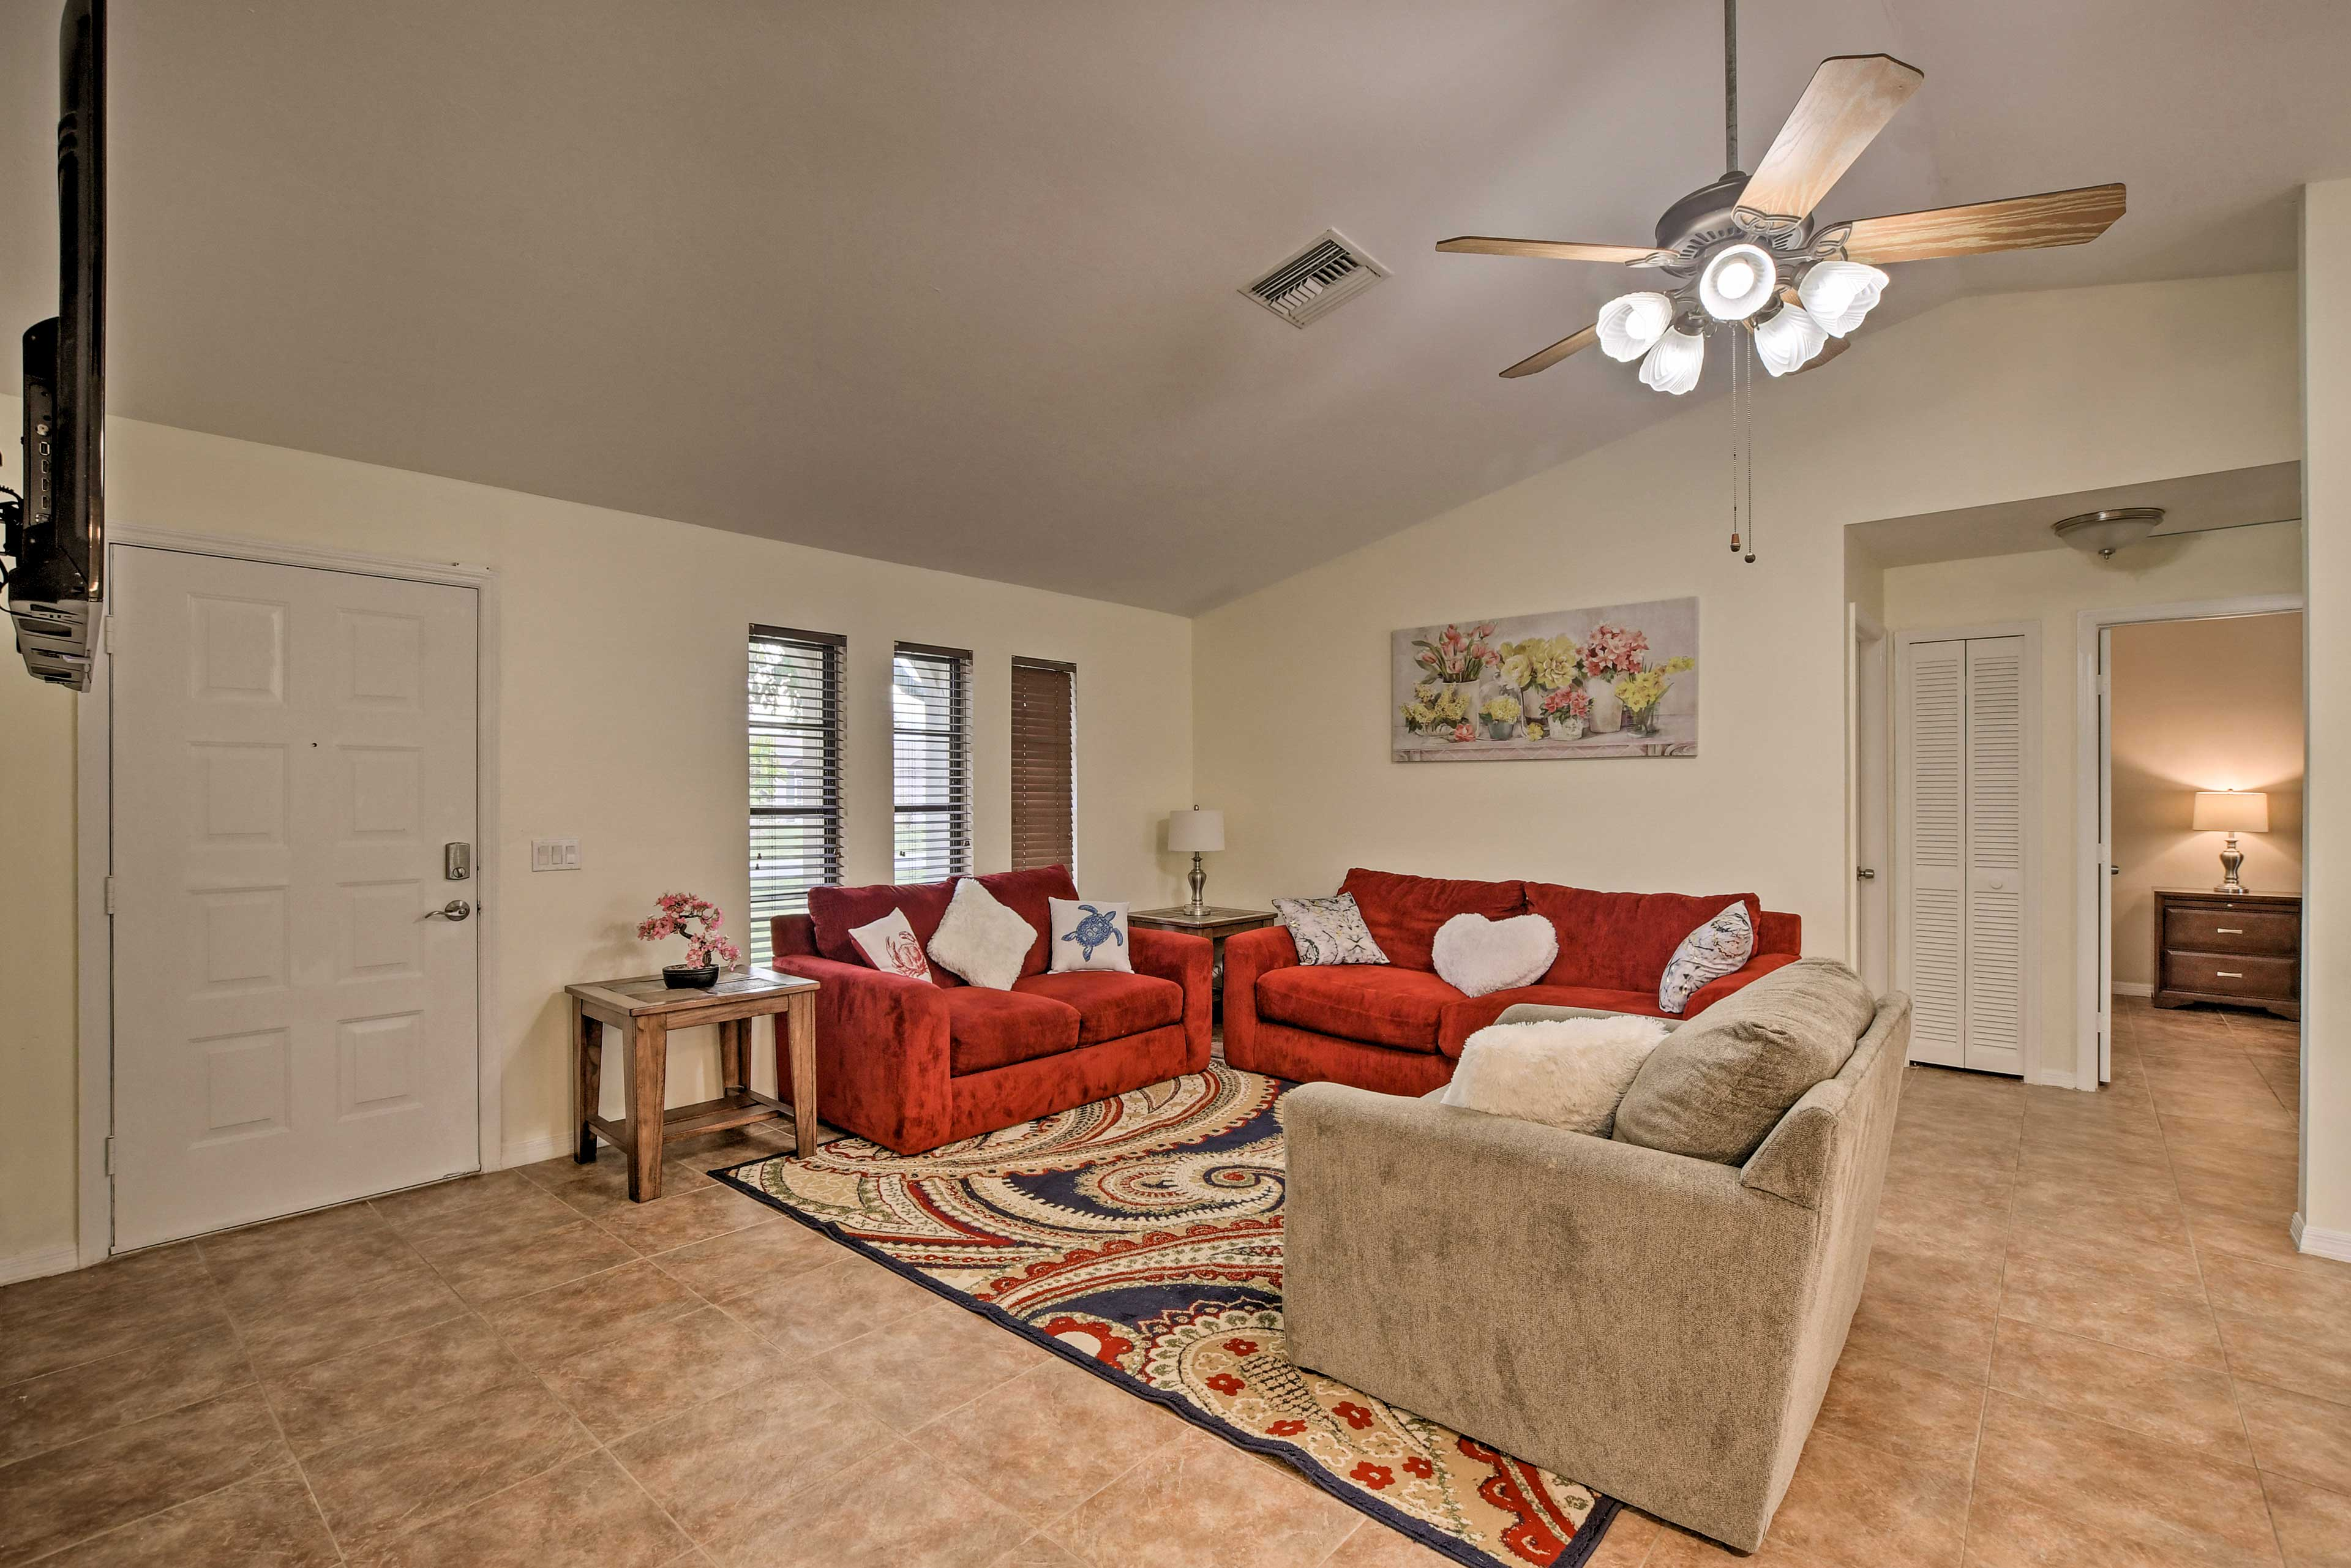 The living space has vaulted ceilings and a ceiling fan.